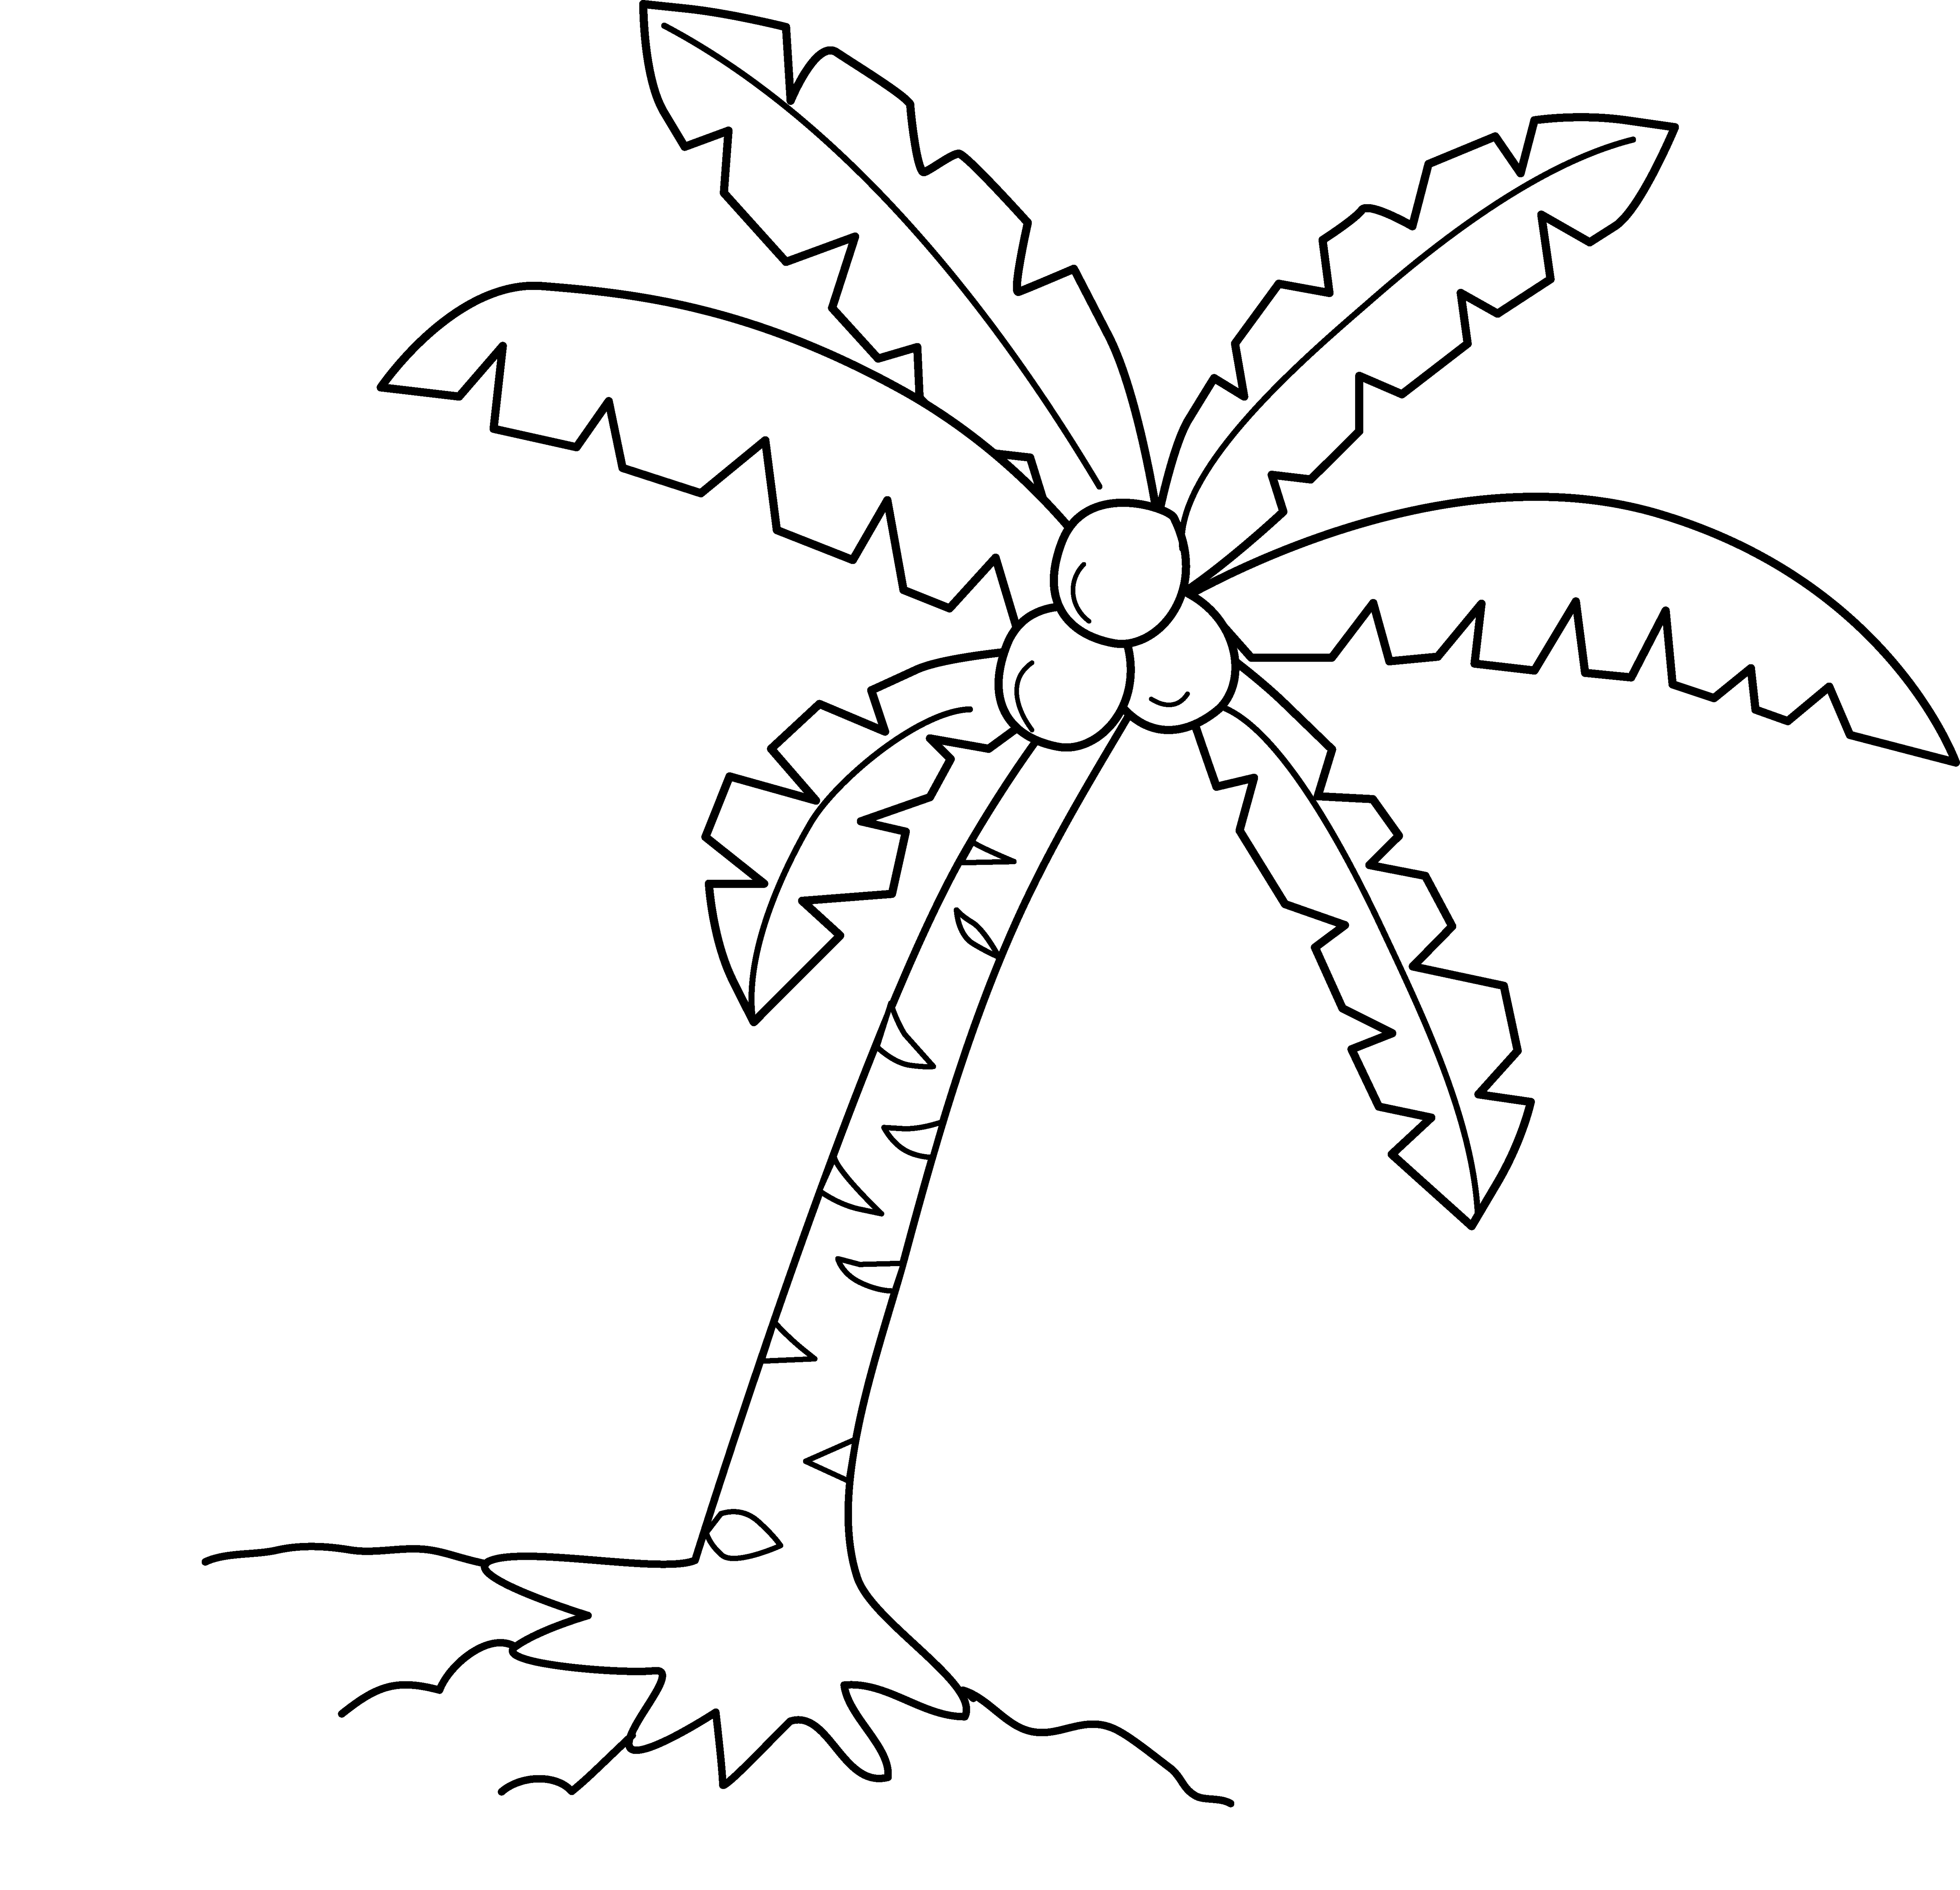 Palm tree christmas clipart black and white clip art Best Images Of Tree Clipart Black and White - Best Home Plans and ... clip art